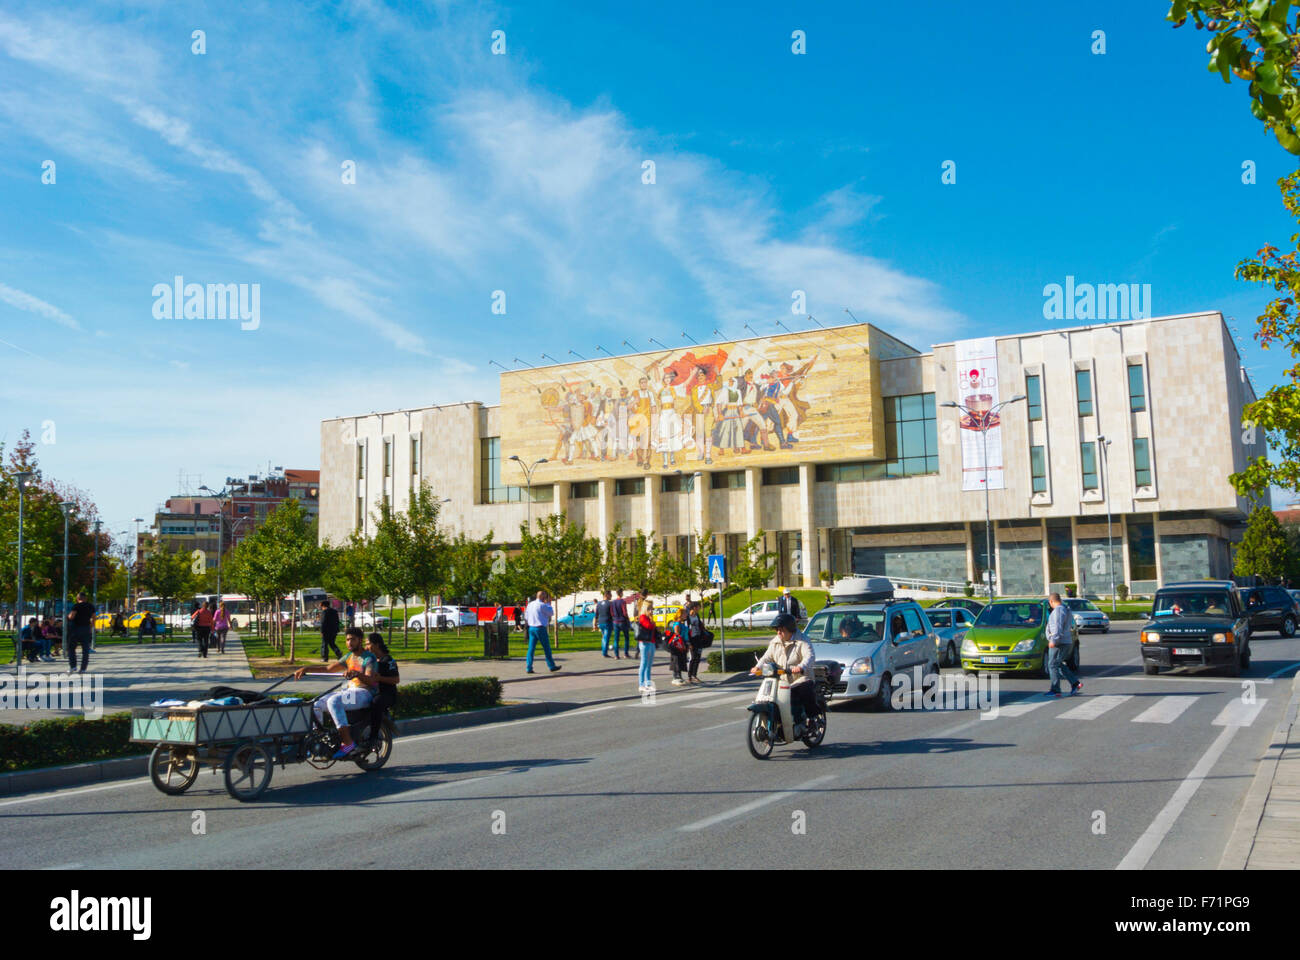 Traffic in front of National History Museum, Sheshi Skenderbej,Skanderbeg square, main square, Tirana, Albania - Stock Image